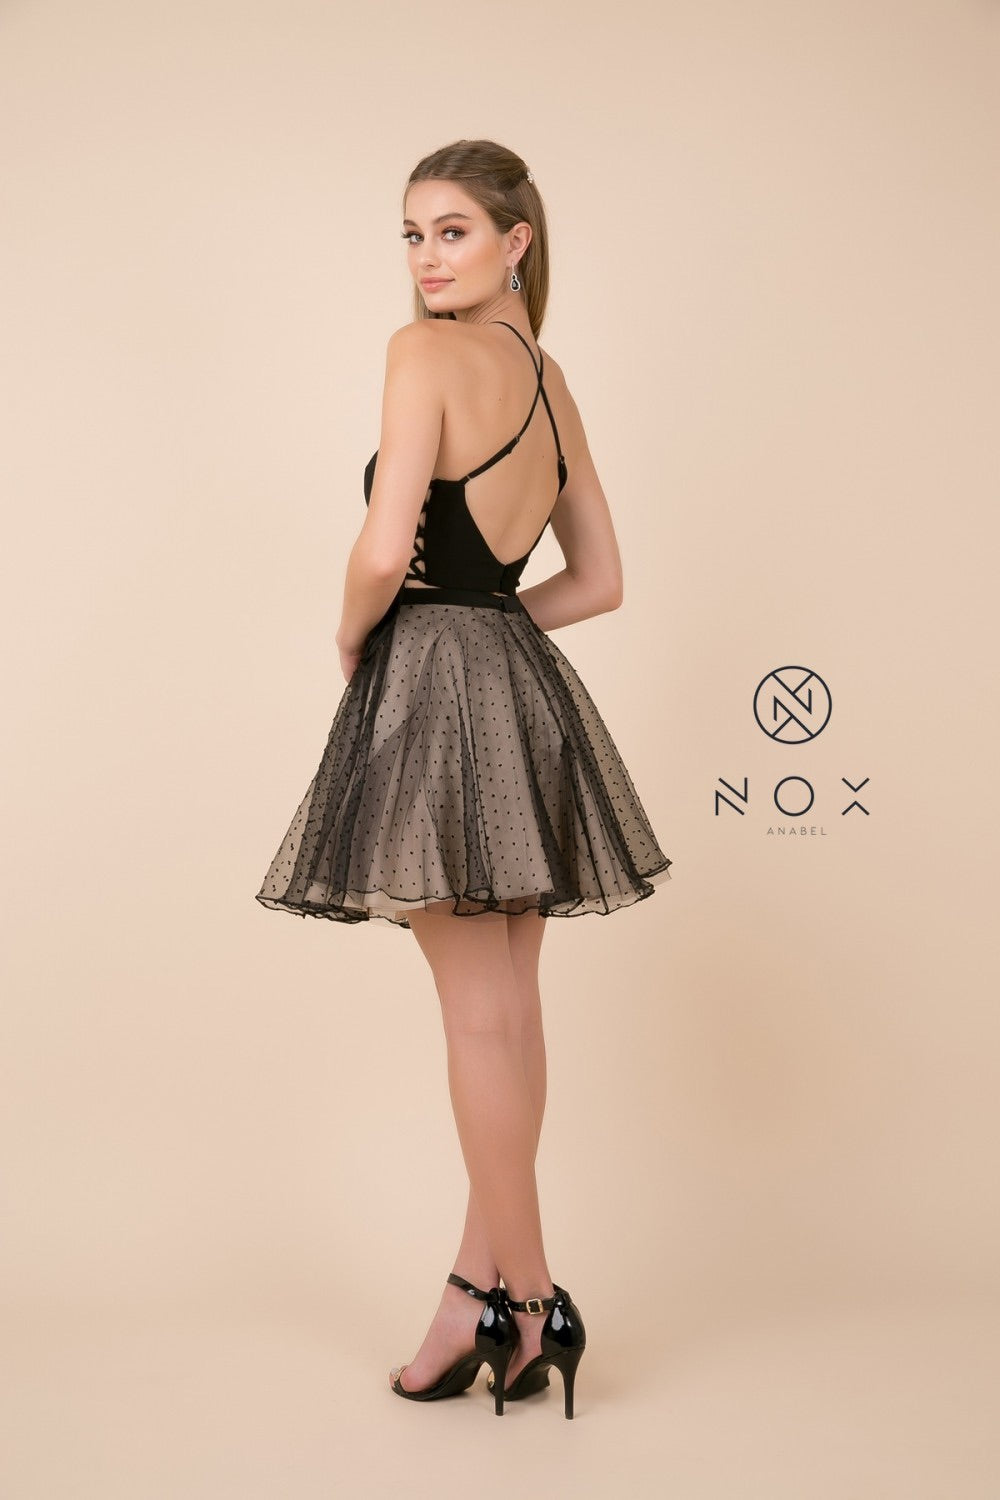 Nox Anabel M659 Two-Piece Polka Dot Dress